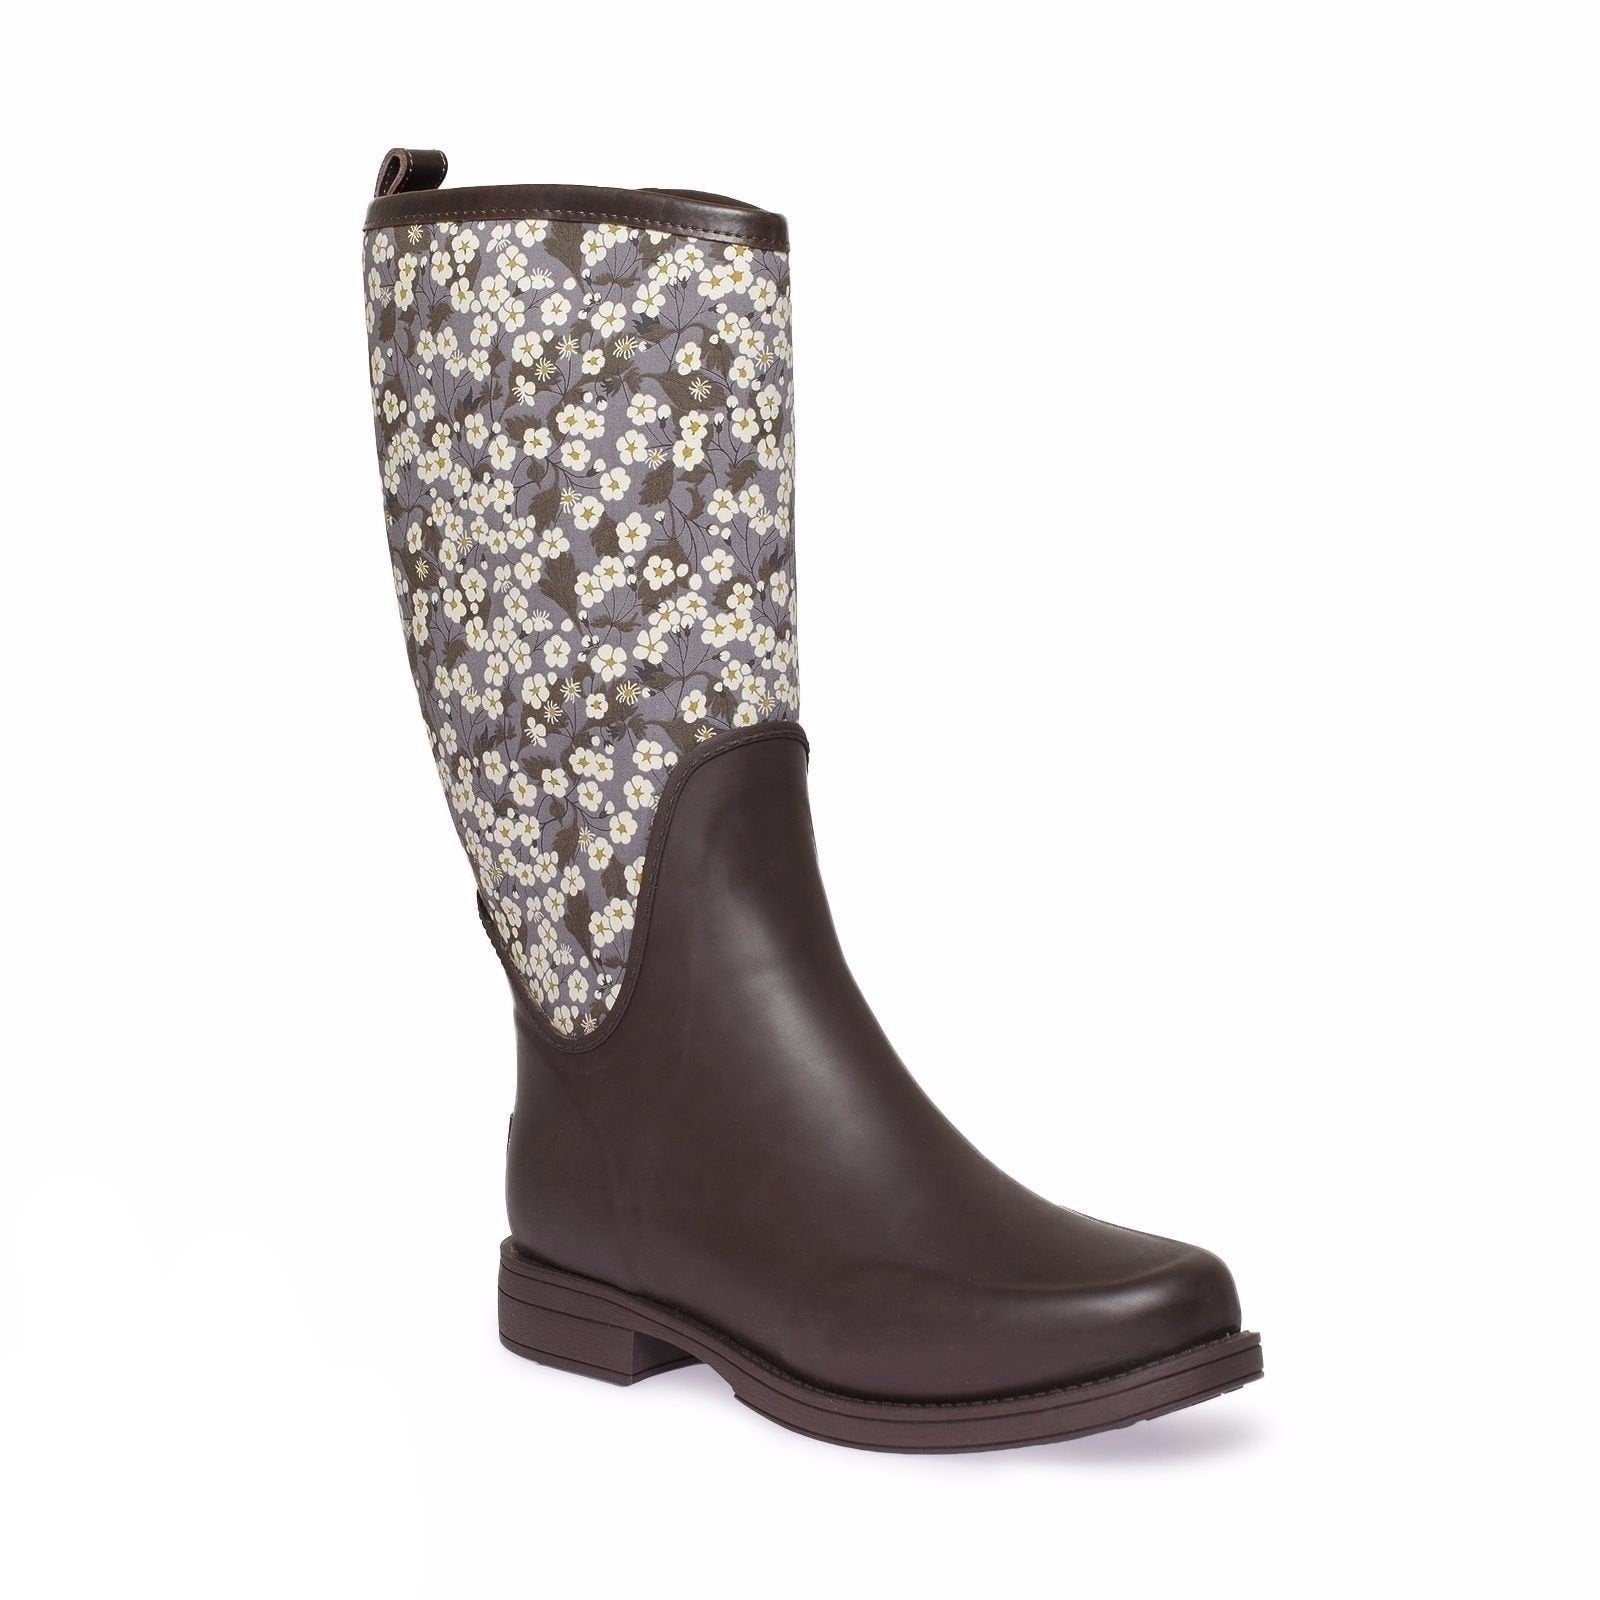 866a30e12df UGG Reignfall Pony Brown Boots